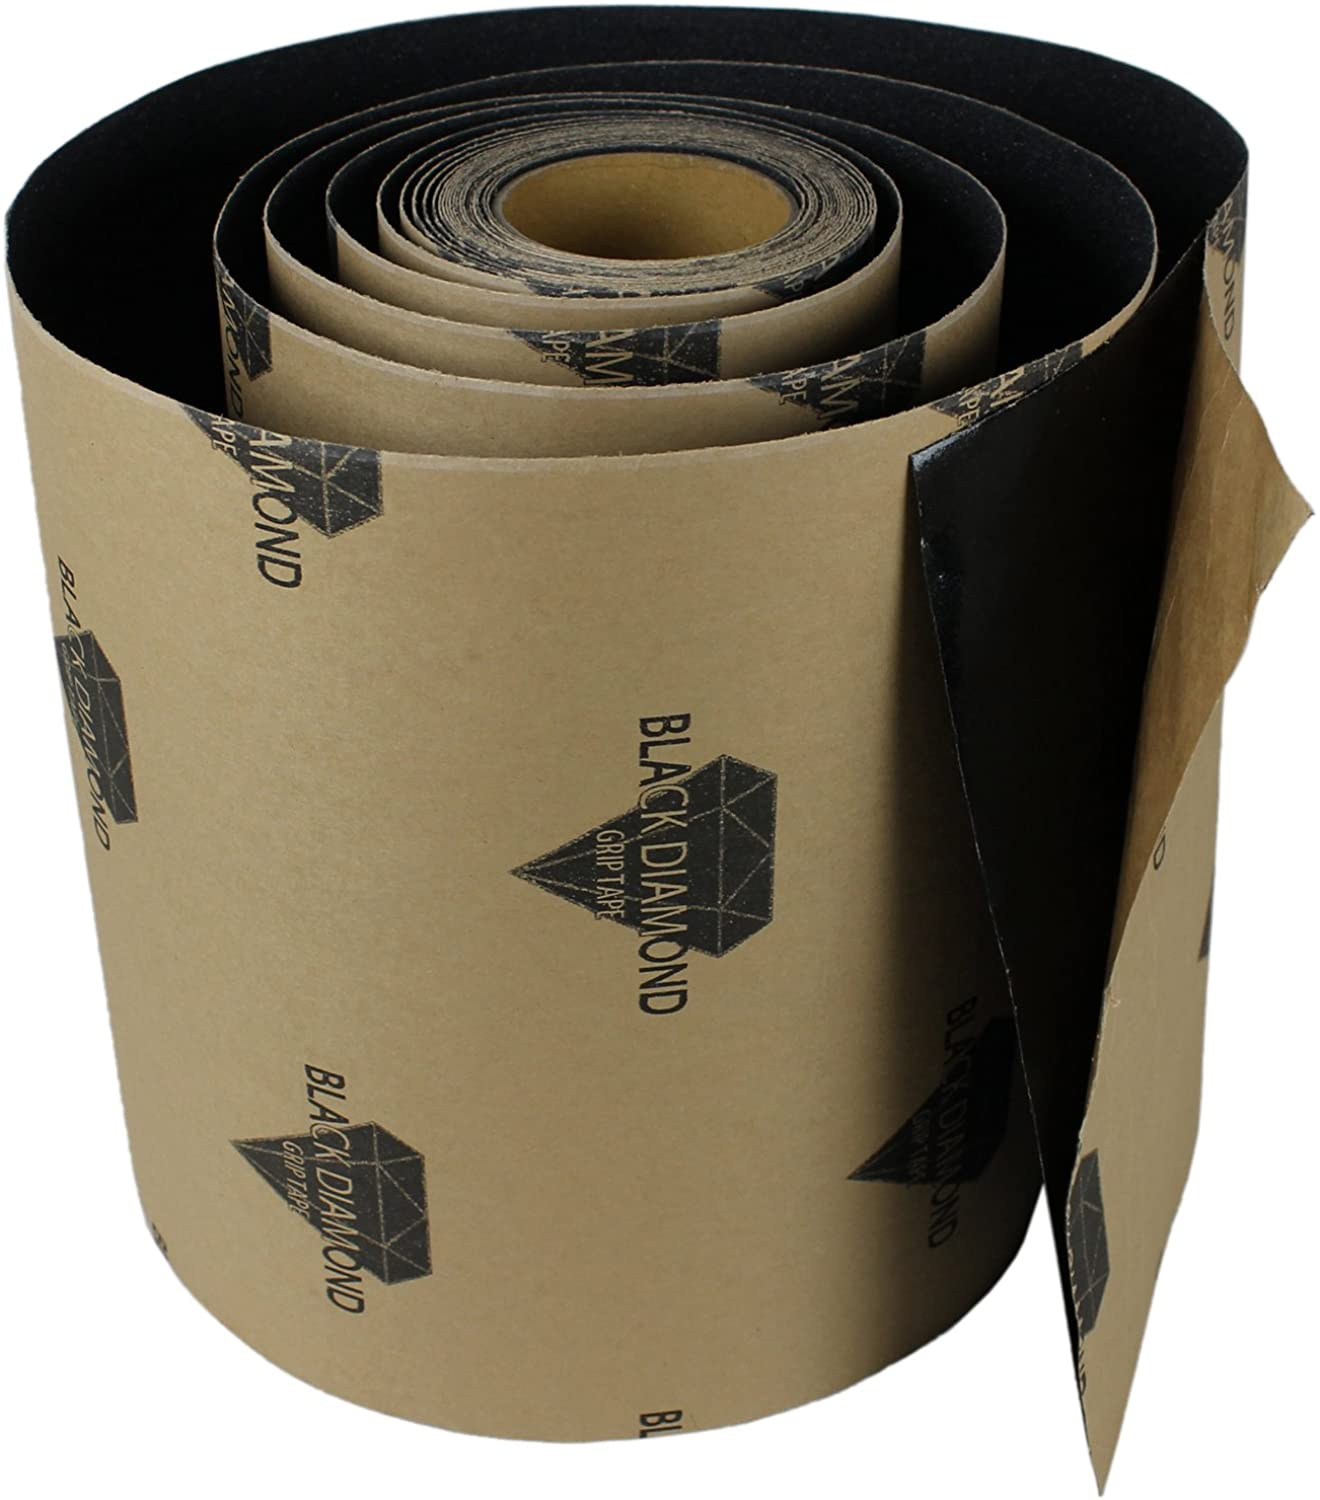 Anti Slip Traction Tape Black Roll Safety Non Skid Self Adhesive Silicon Carbide Sticky Grip Safe Grit 12